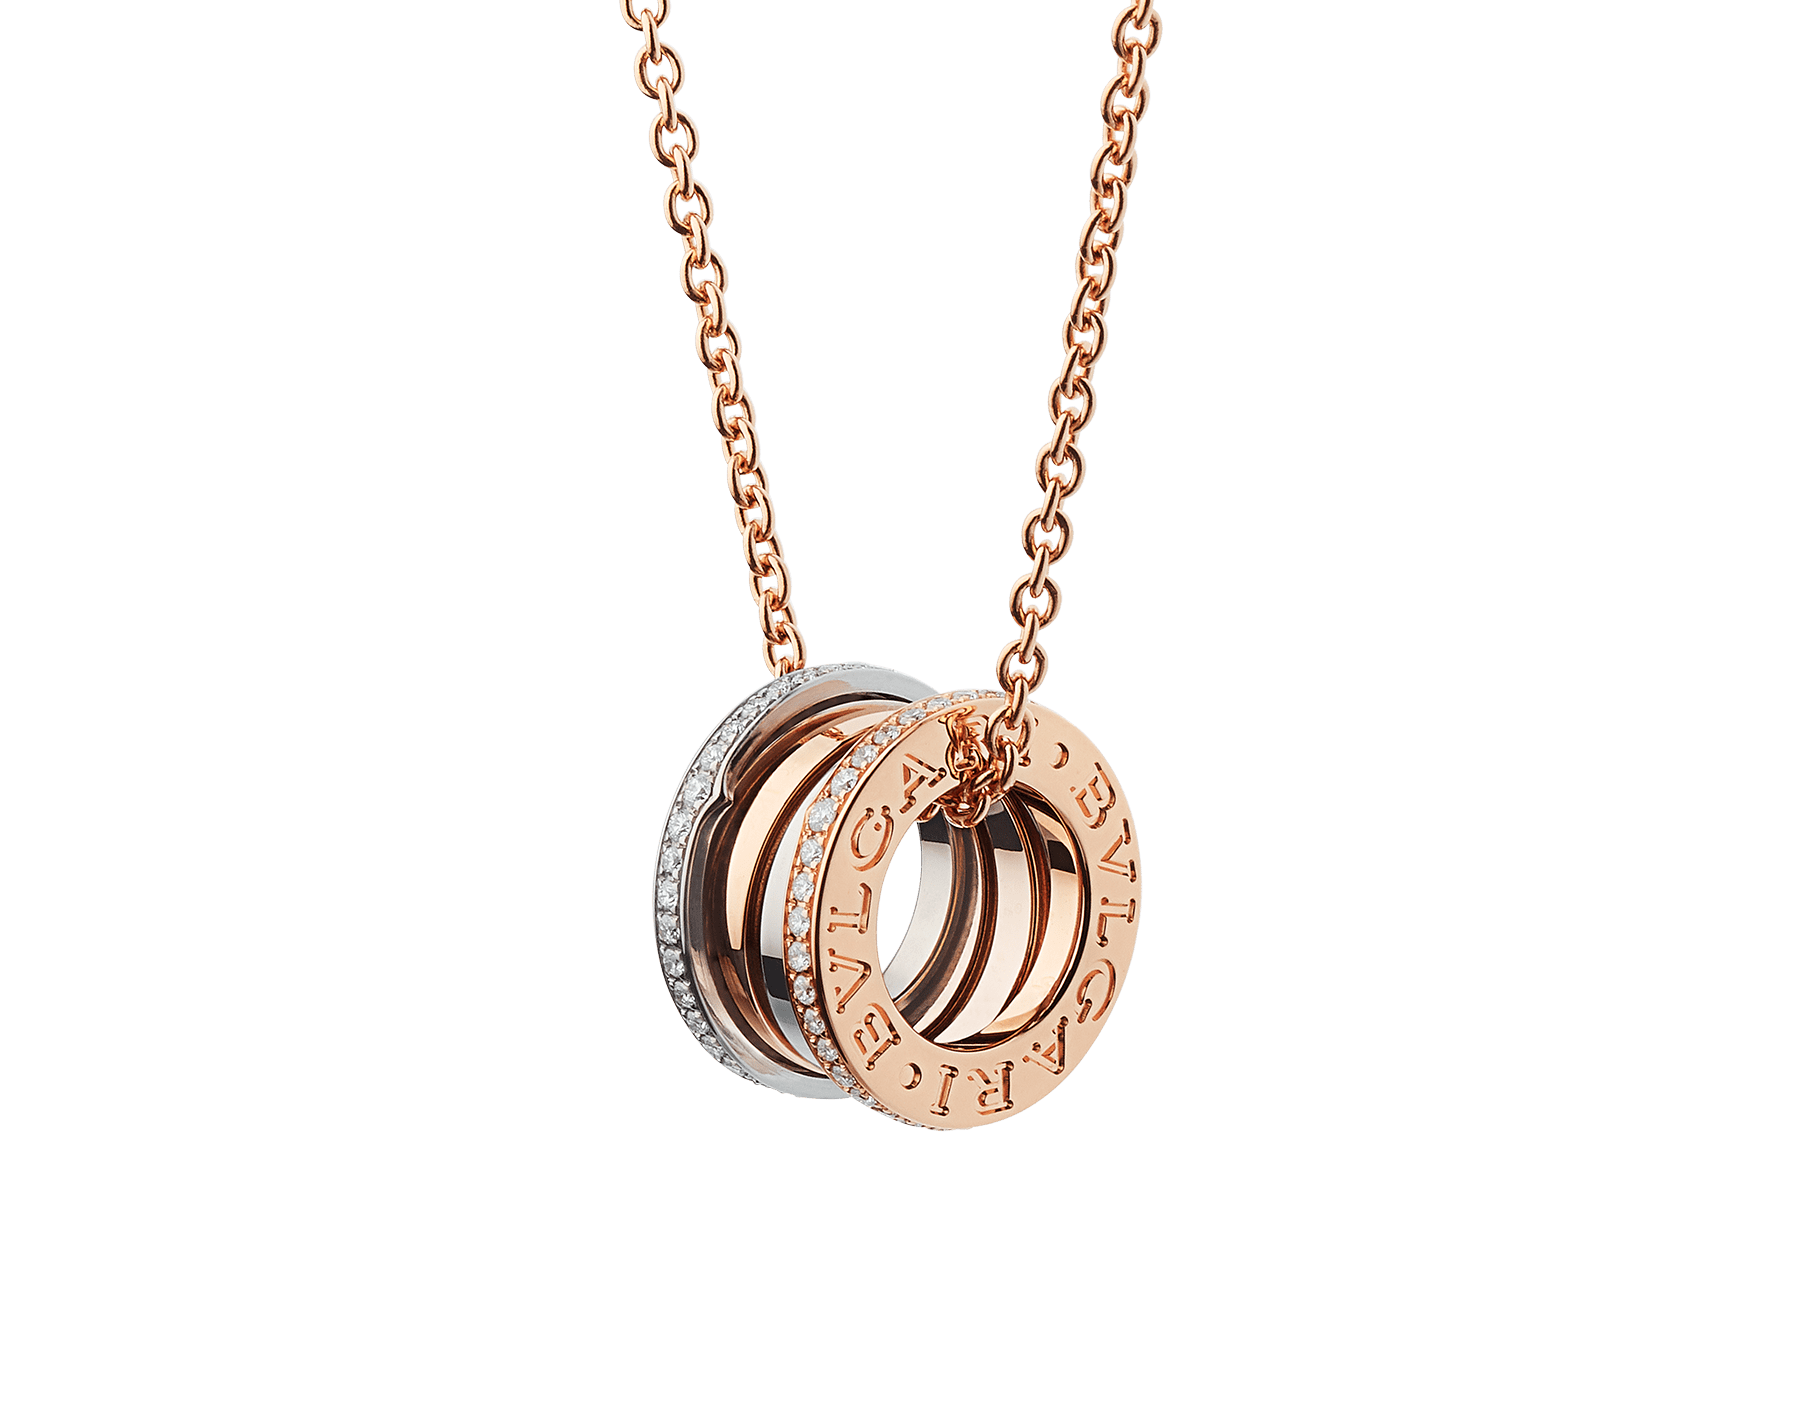 B.zero1 necklace with 18 kt rose and white gold pendant set with pavé diamonds (0.41 ct) on the edges and 18 kt rose gold chain. 355062 image 1